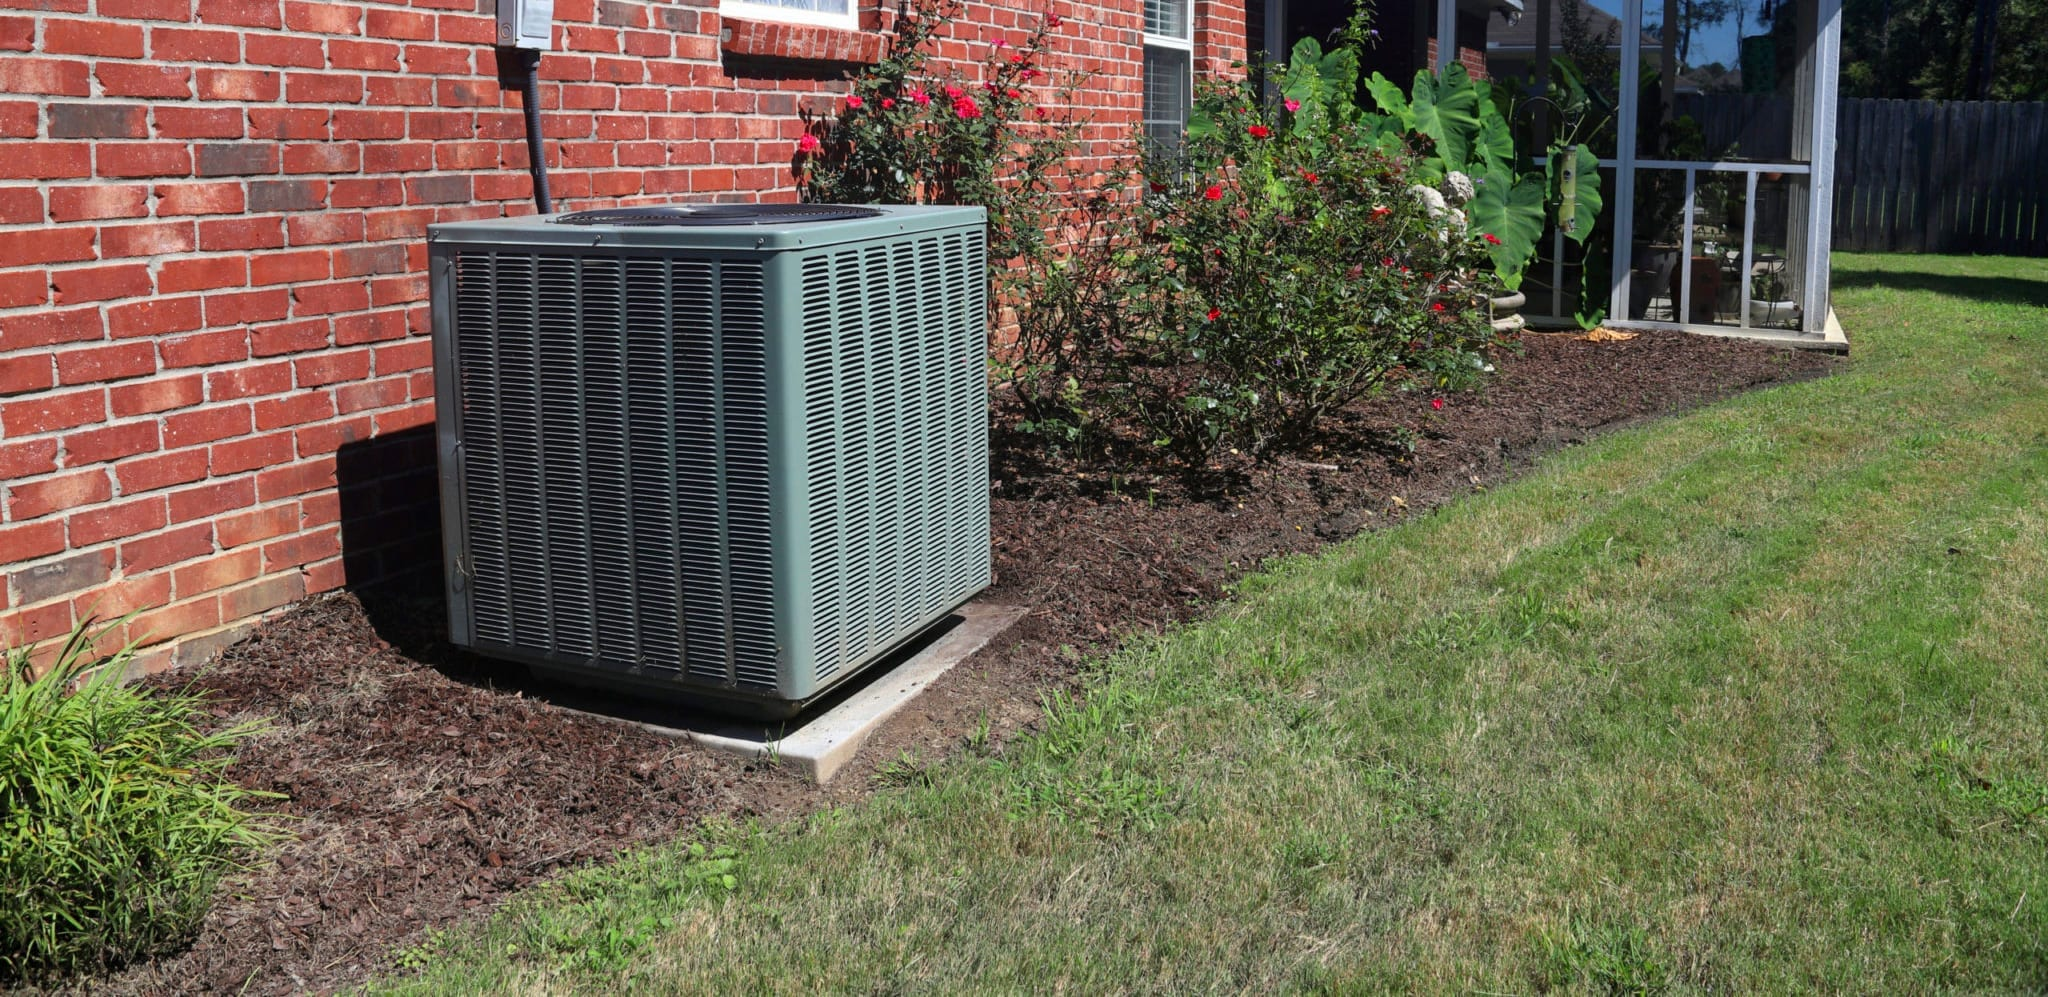 HVAC system condenser unit in the backyard